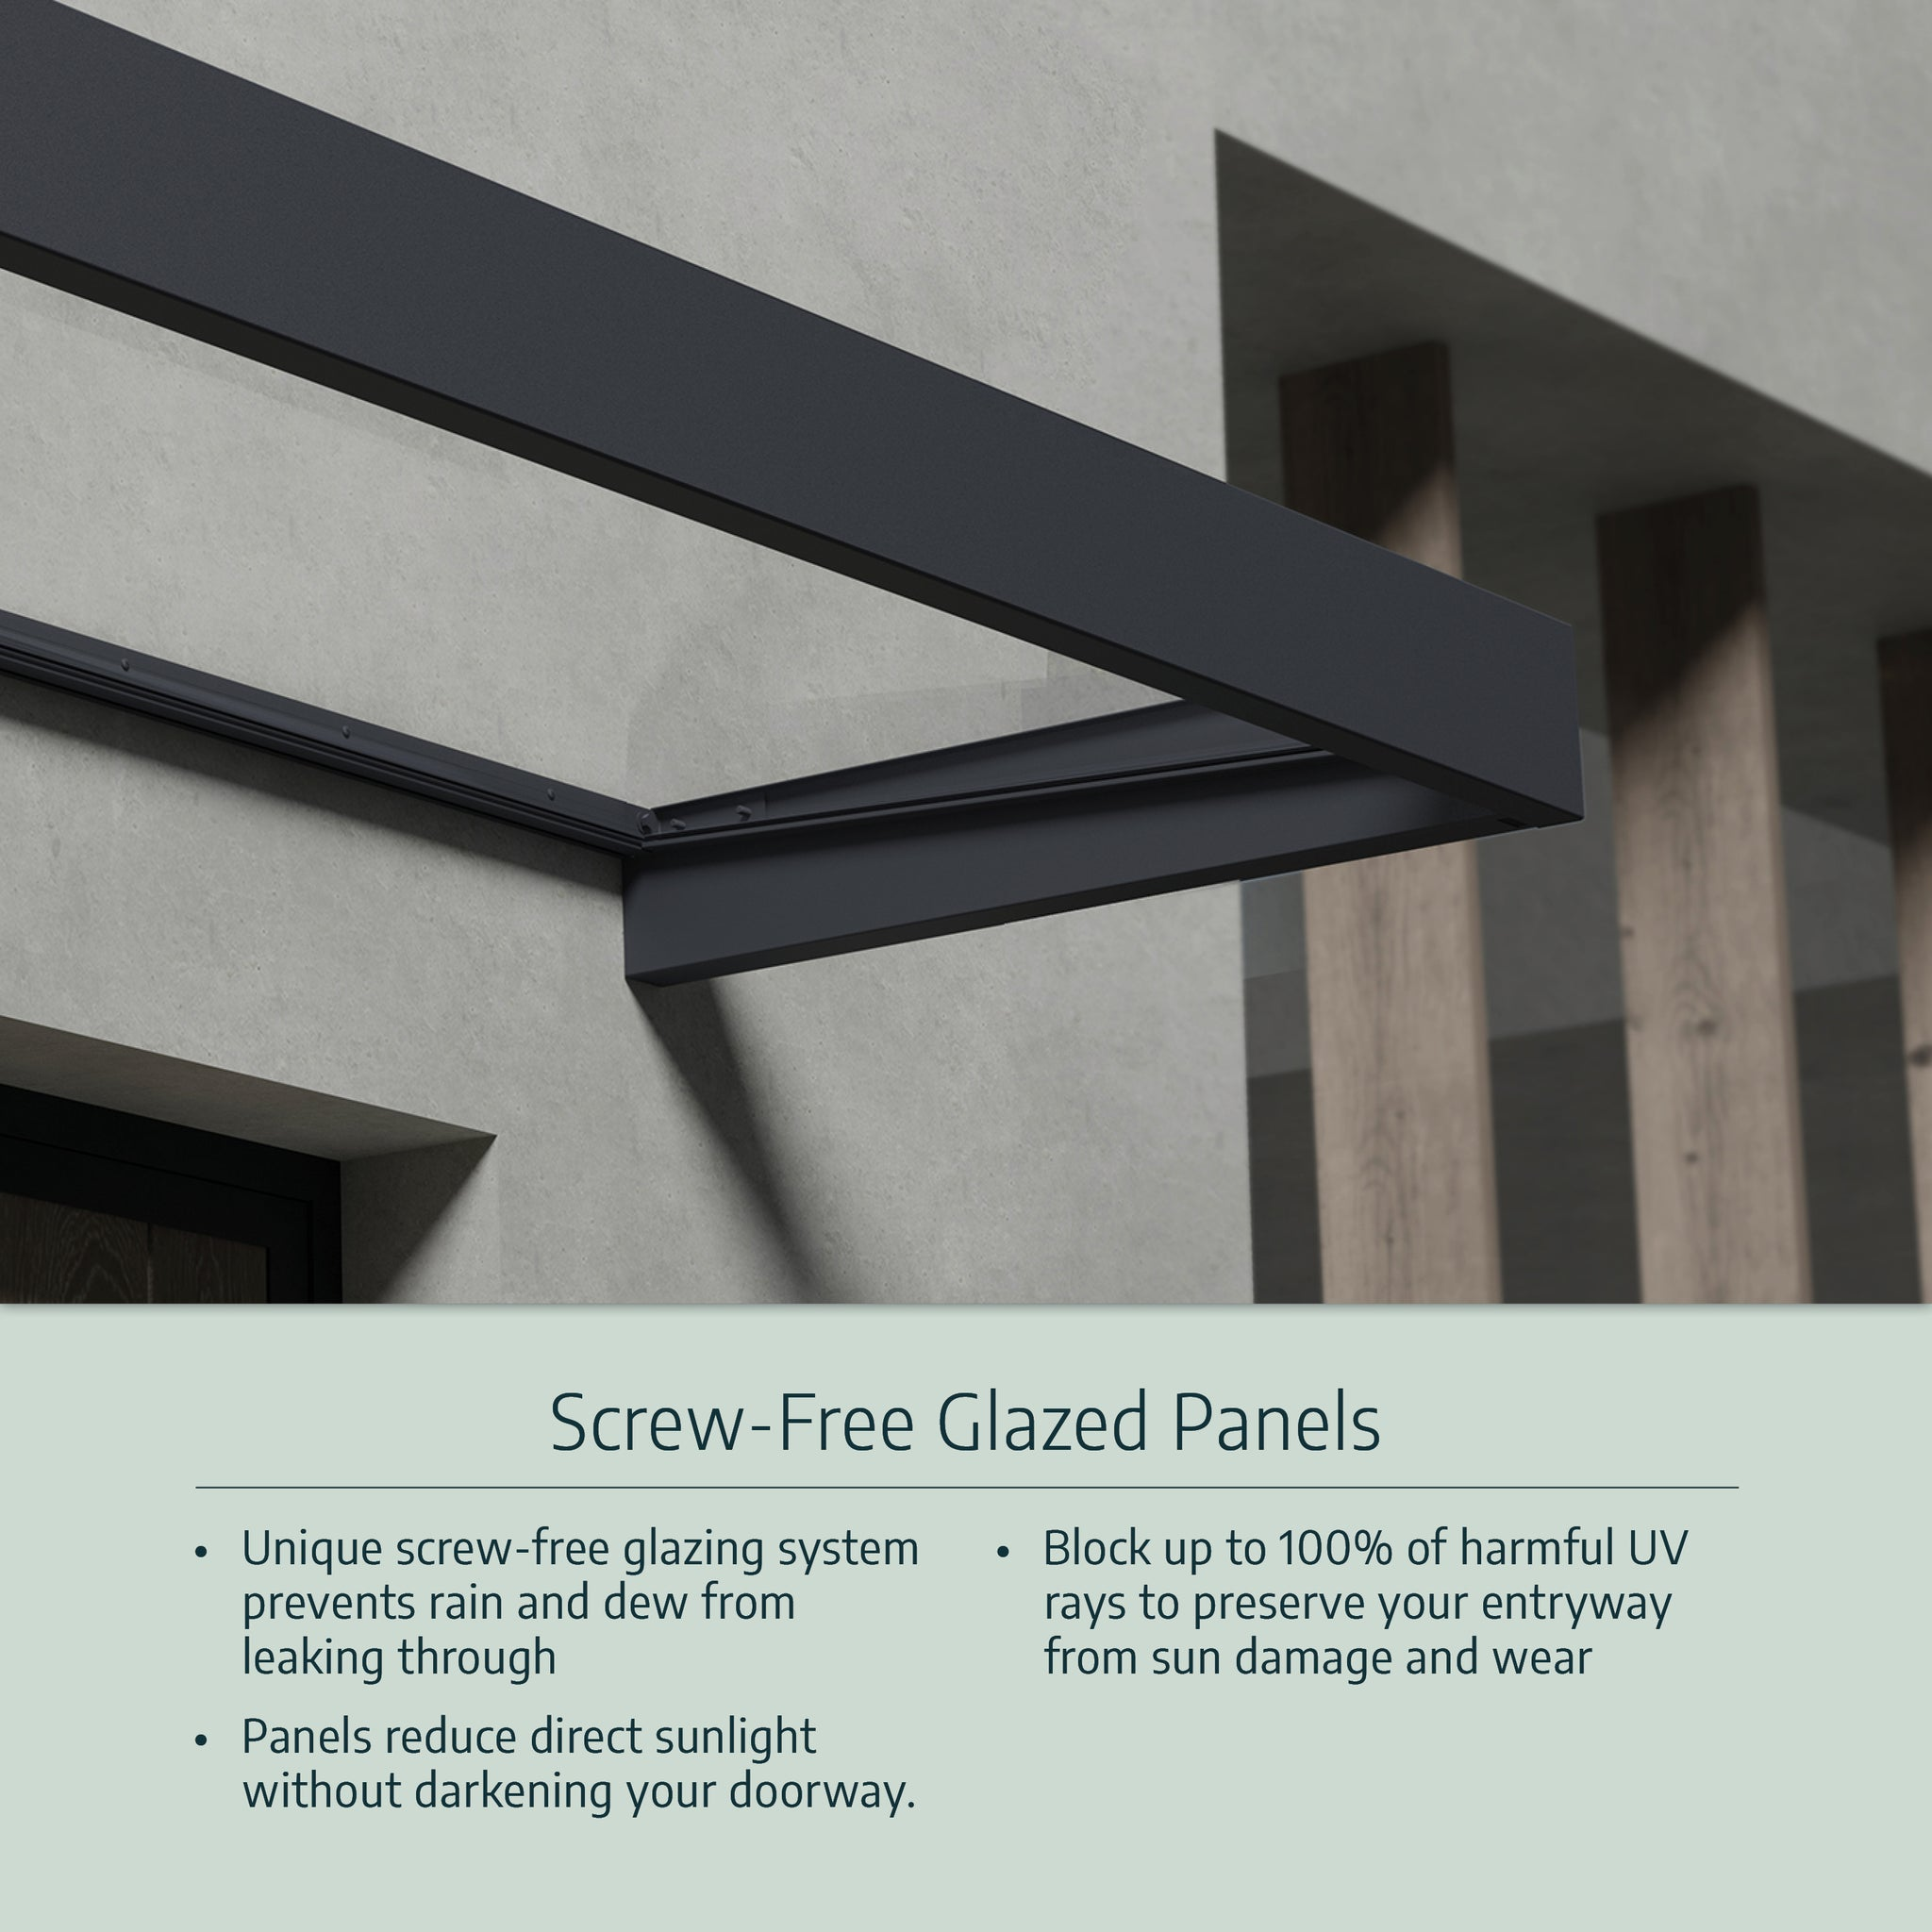 Palram's Door Awnings Competitive Advantages